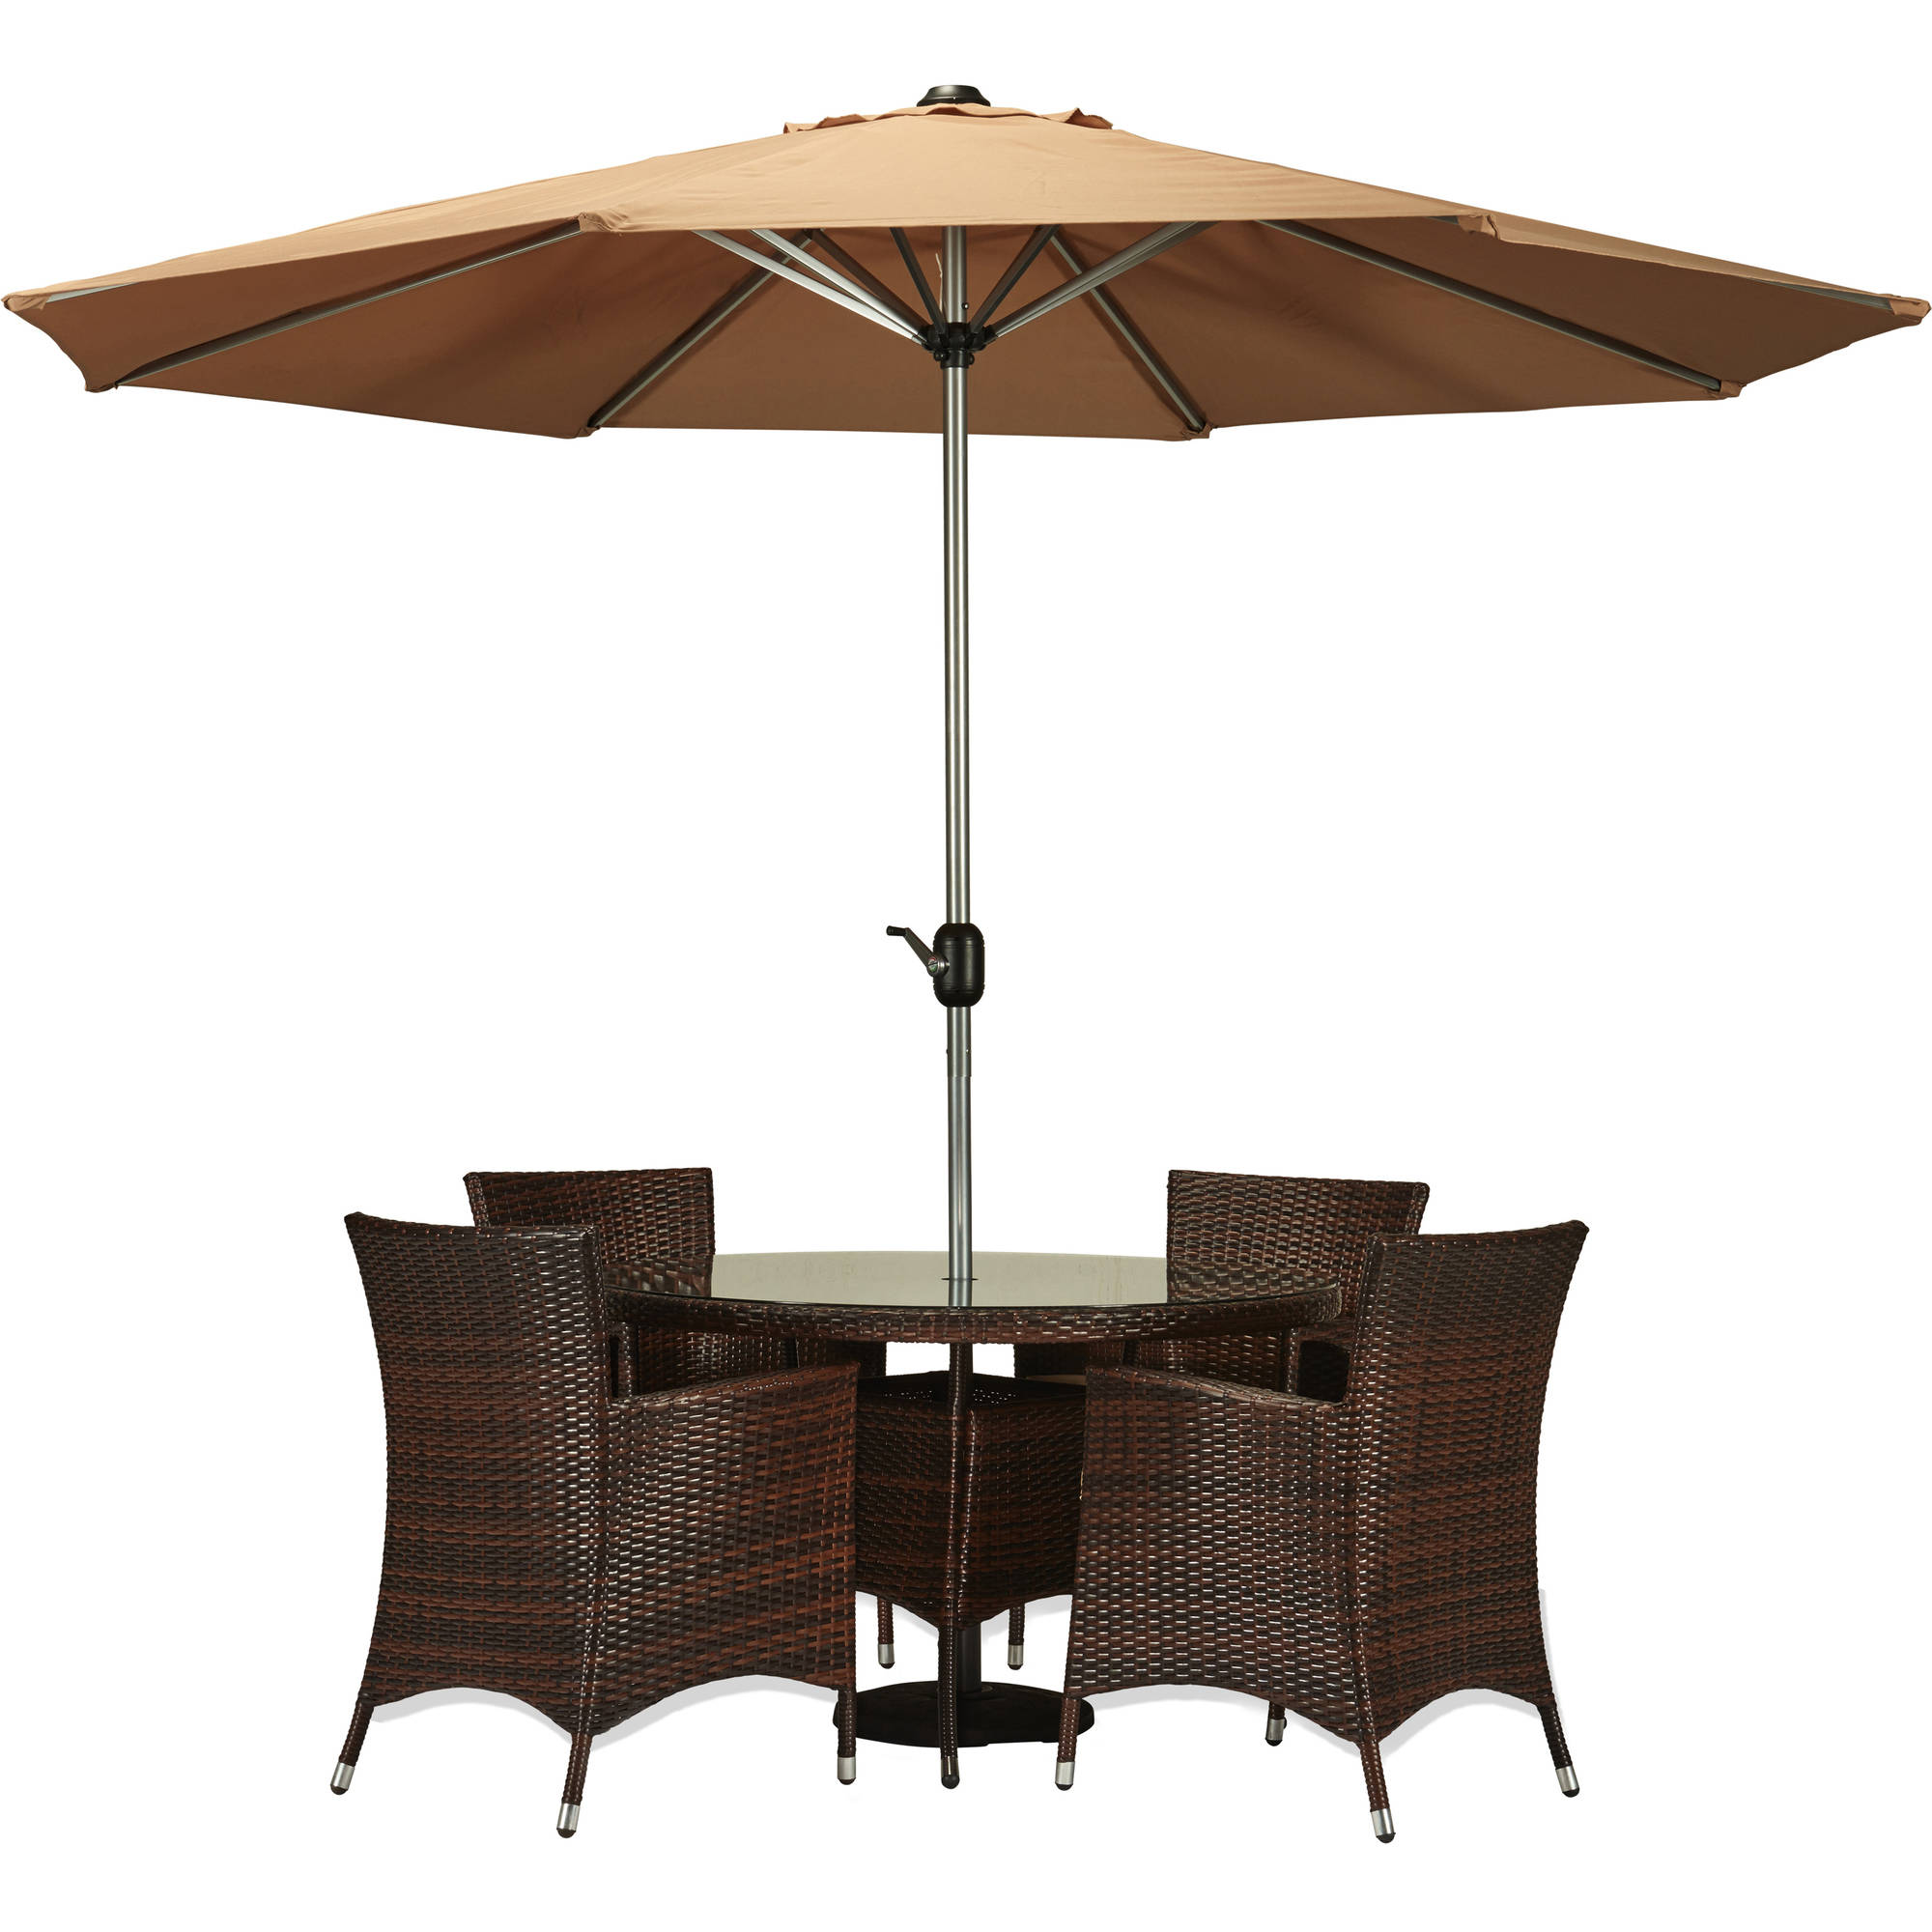 Incadozo 6-Piece All-Weather Wicker Dining Set, Dark Brown with Beige Umbrella and Cushions